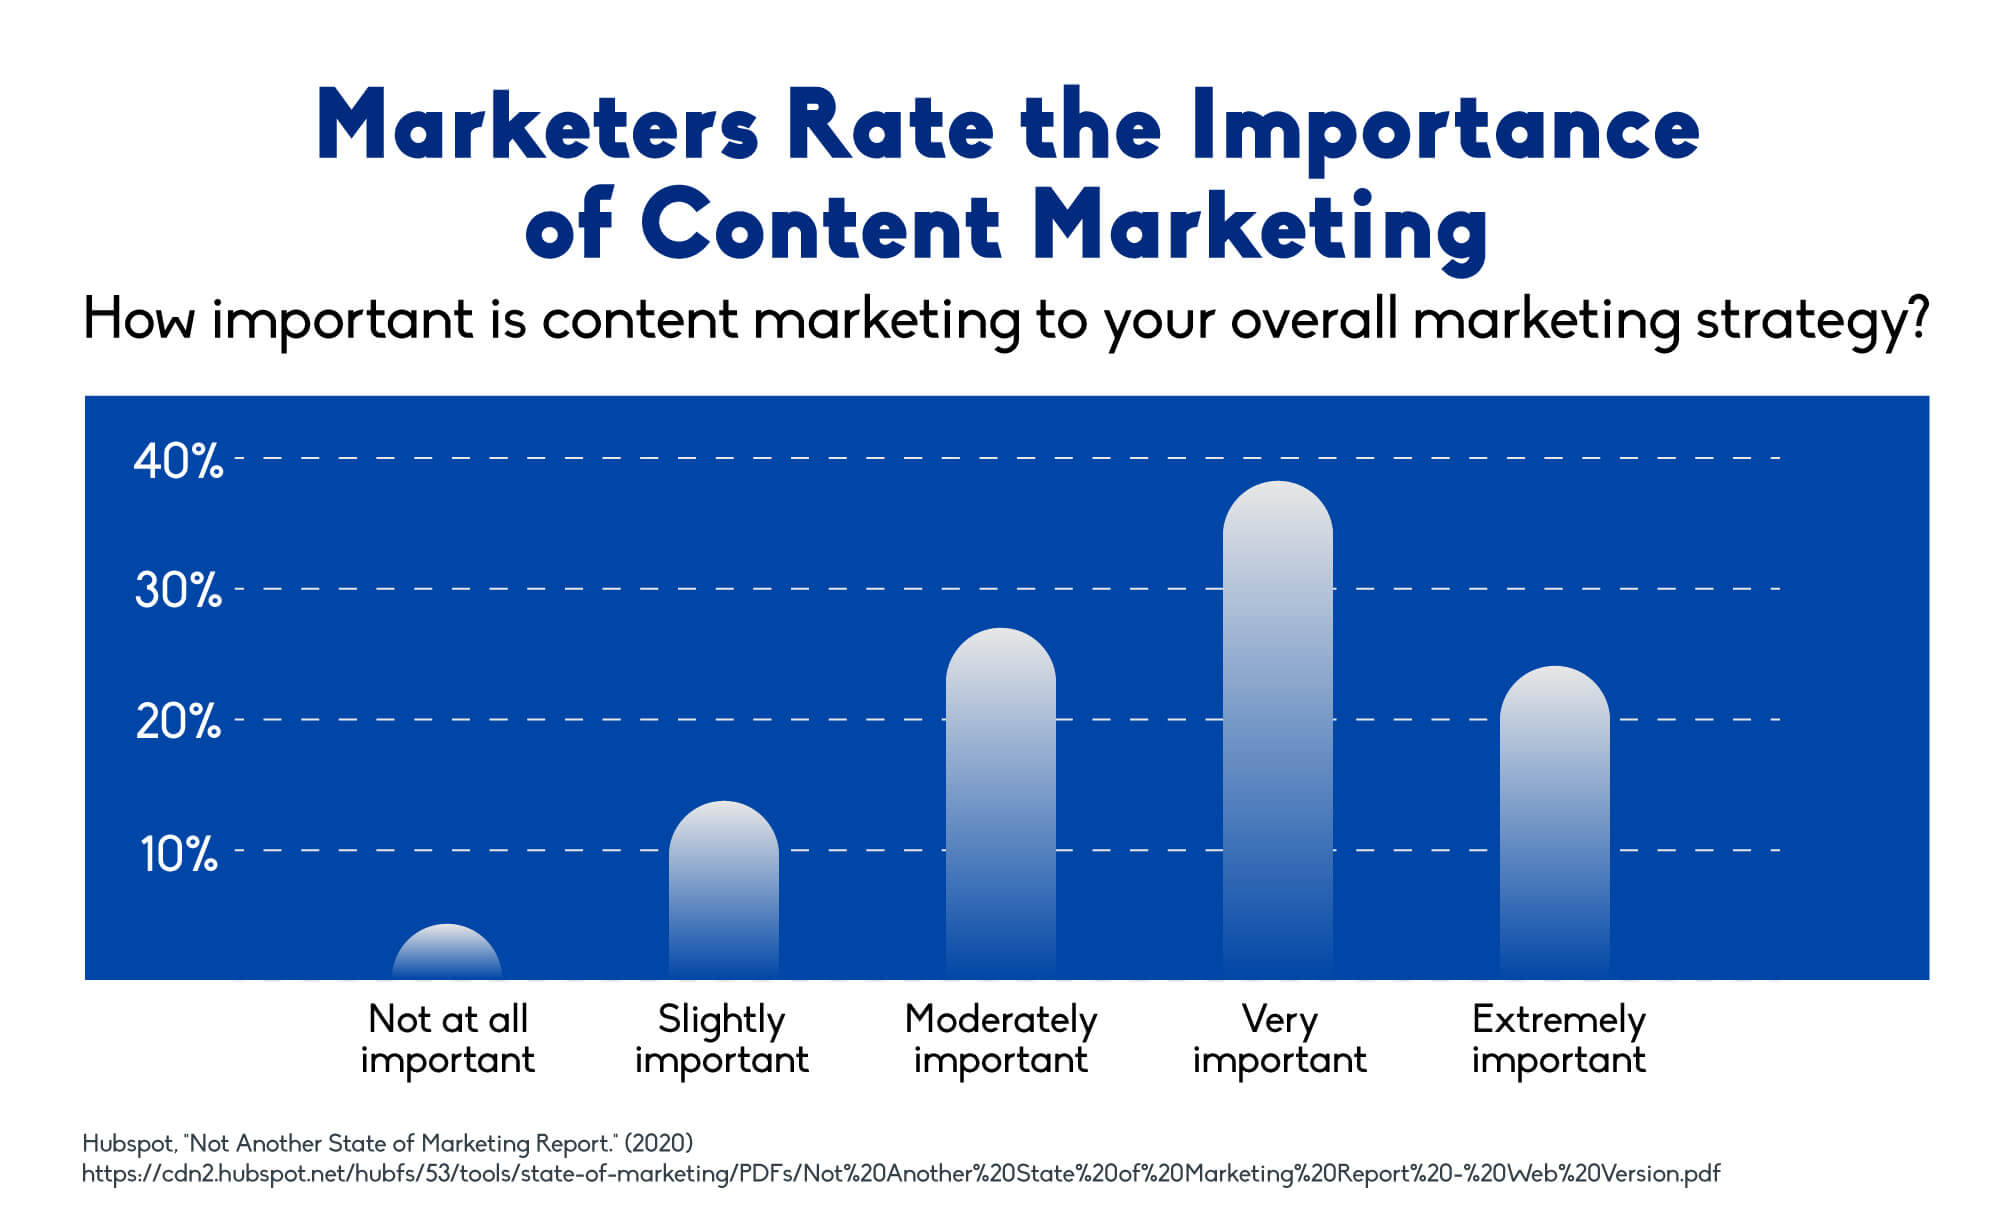 Marketers rate the importance of content marketing